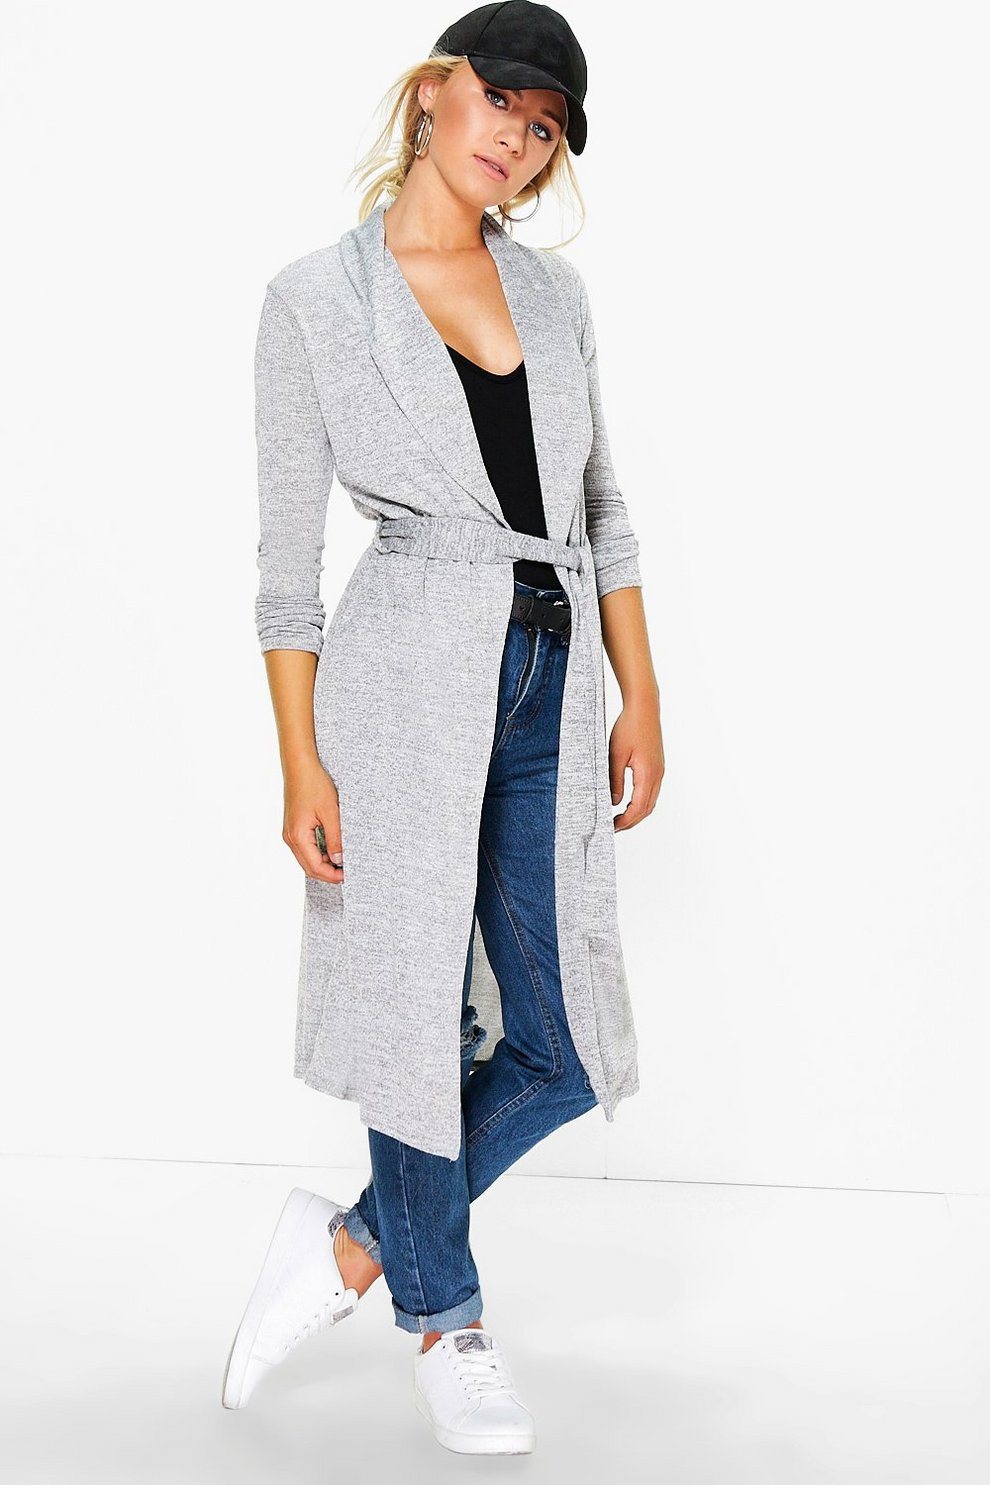 c28fd5db9d Evie Waterfall Belted Cardigan. Evie Waterfall Belted Cardigan. Hover to  zoom